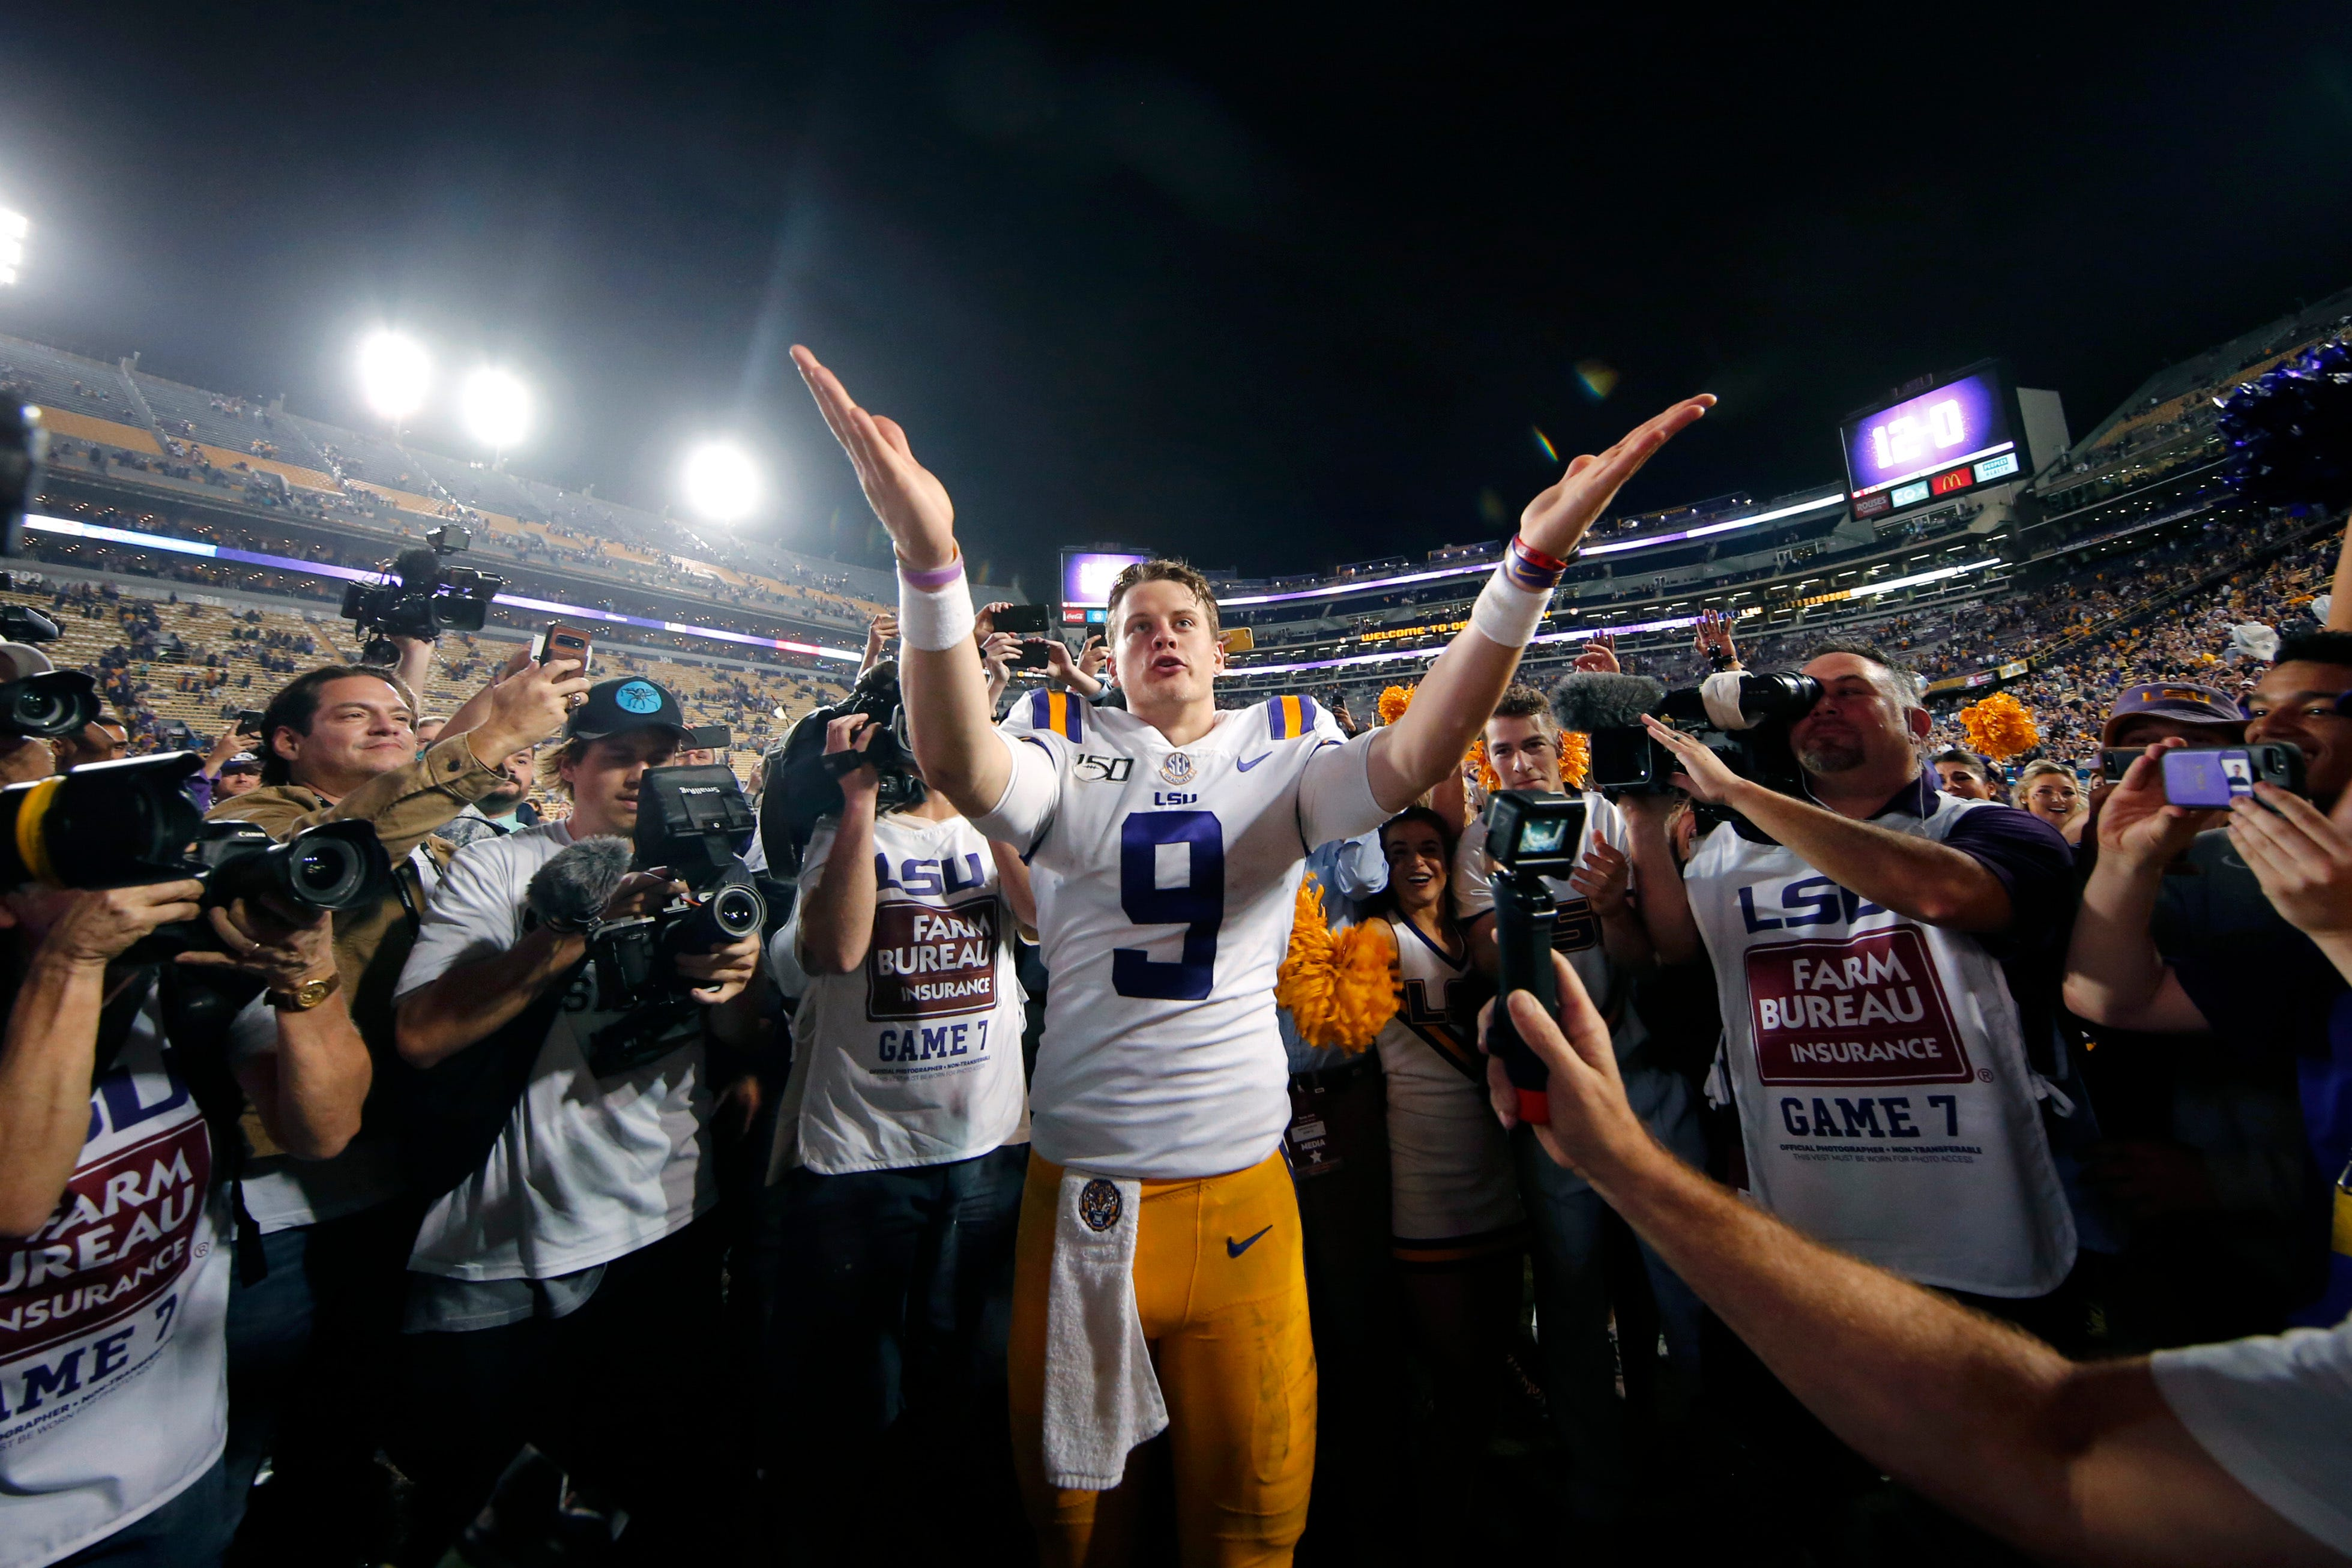 LSU Tigers' Joe Burrow before SEC championship vs. Georgia: 'Don't need a phone. I got a game to play'